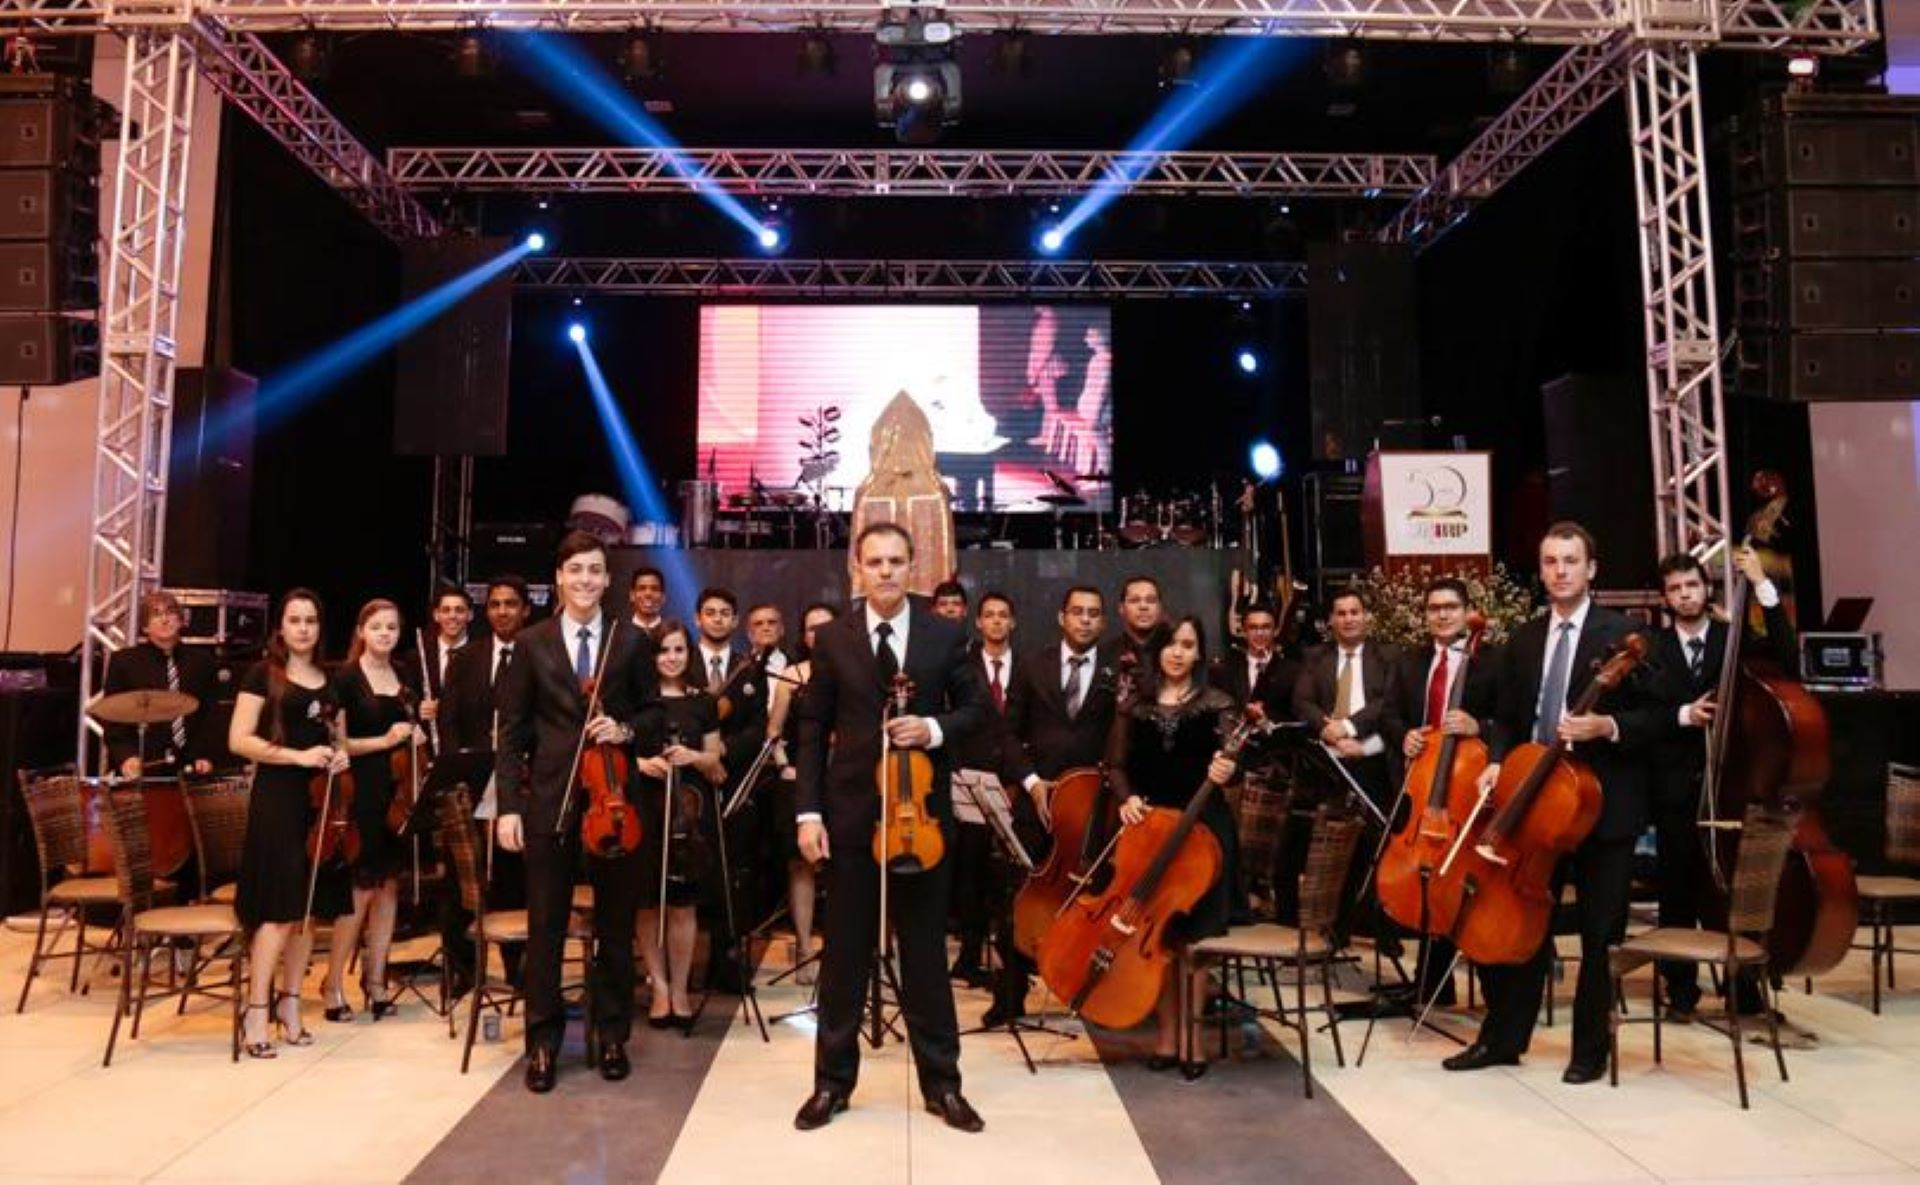 Orquestra Rio Preto toca Beatles